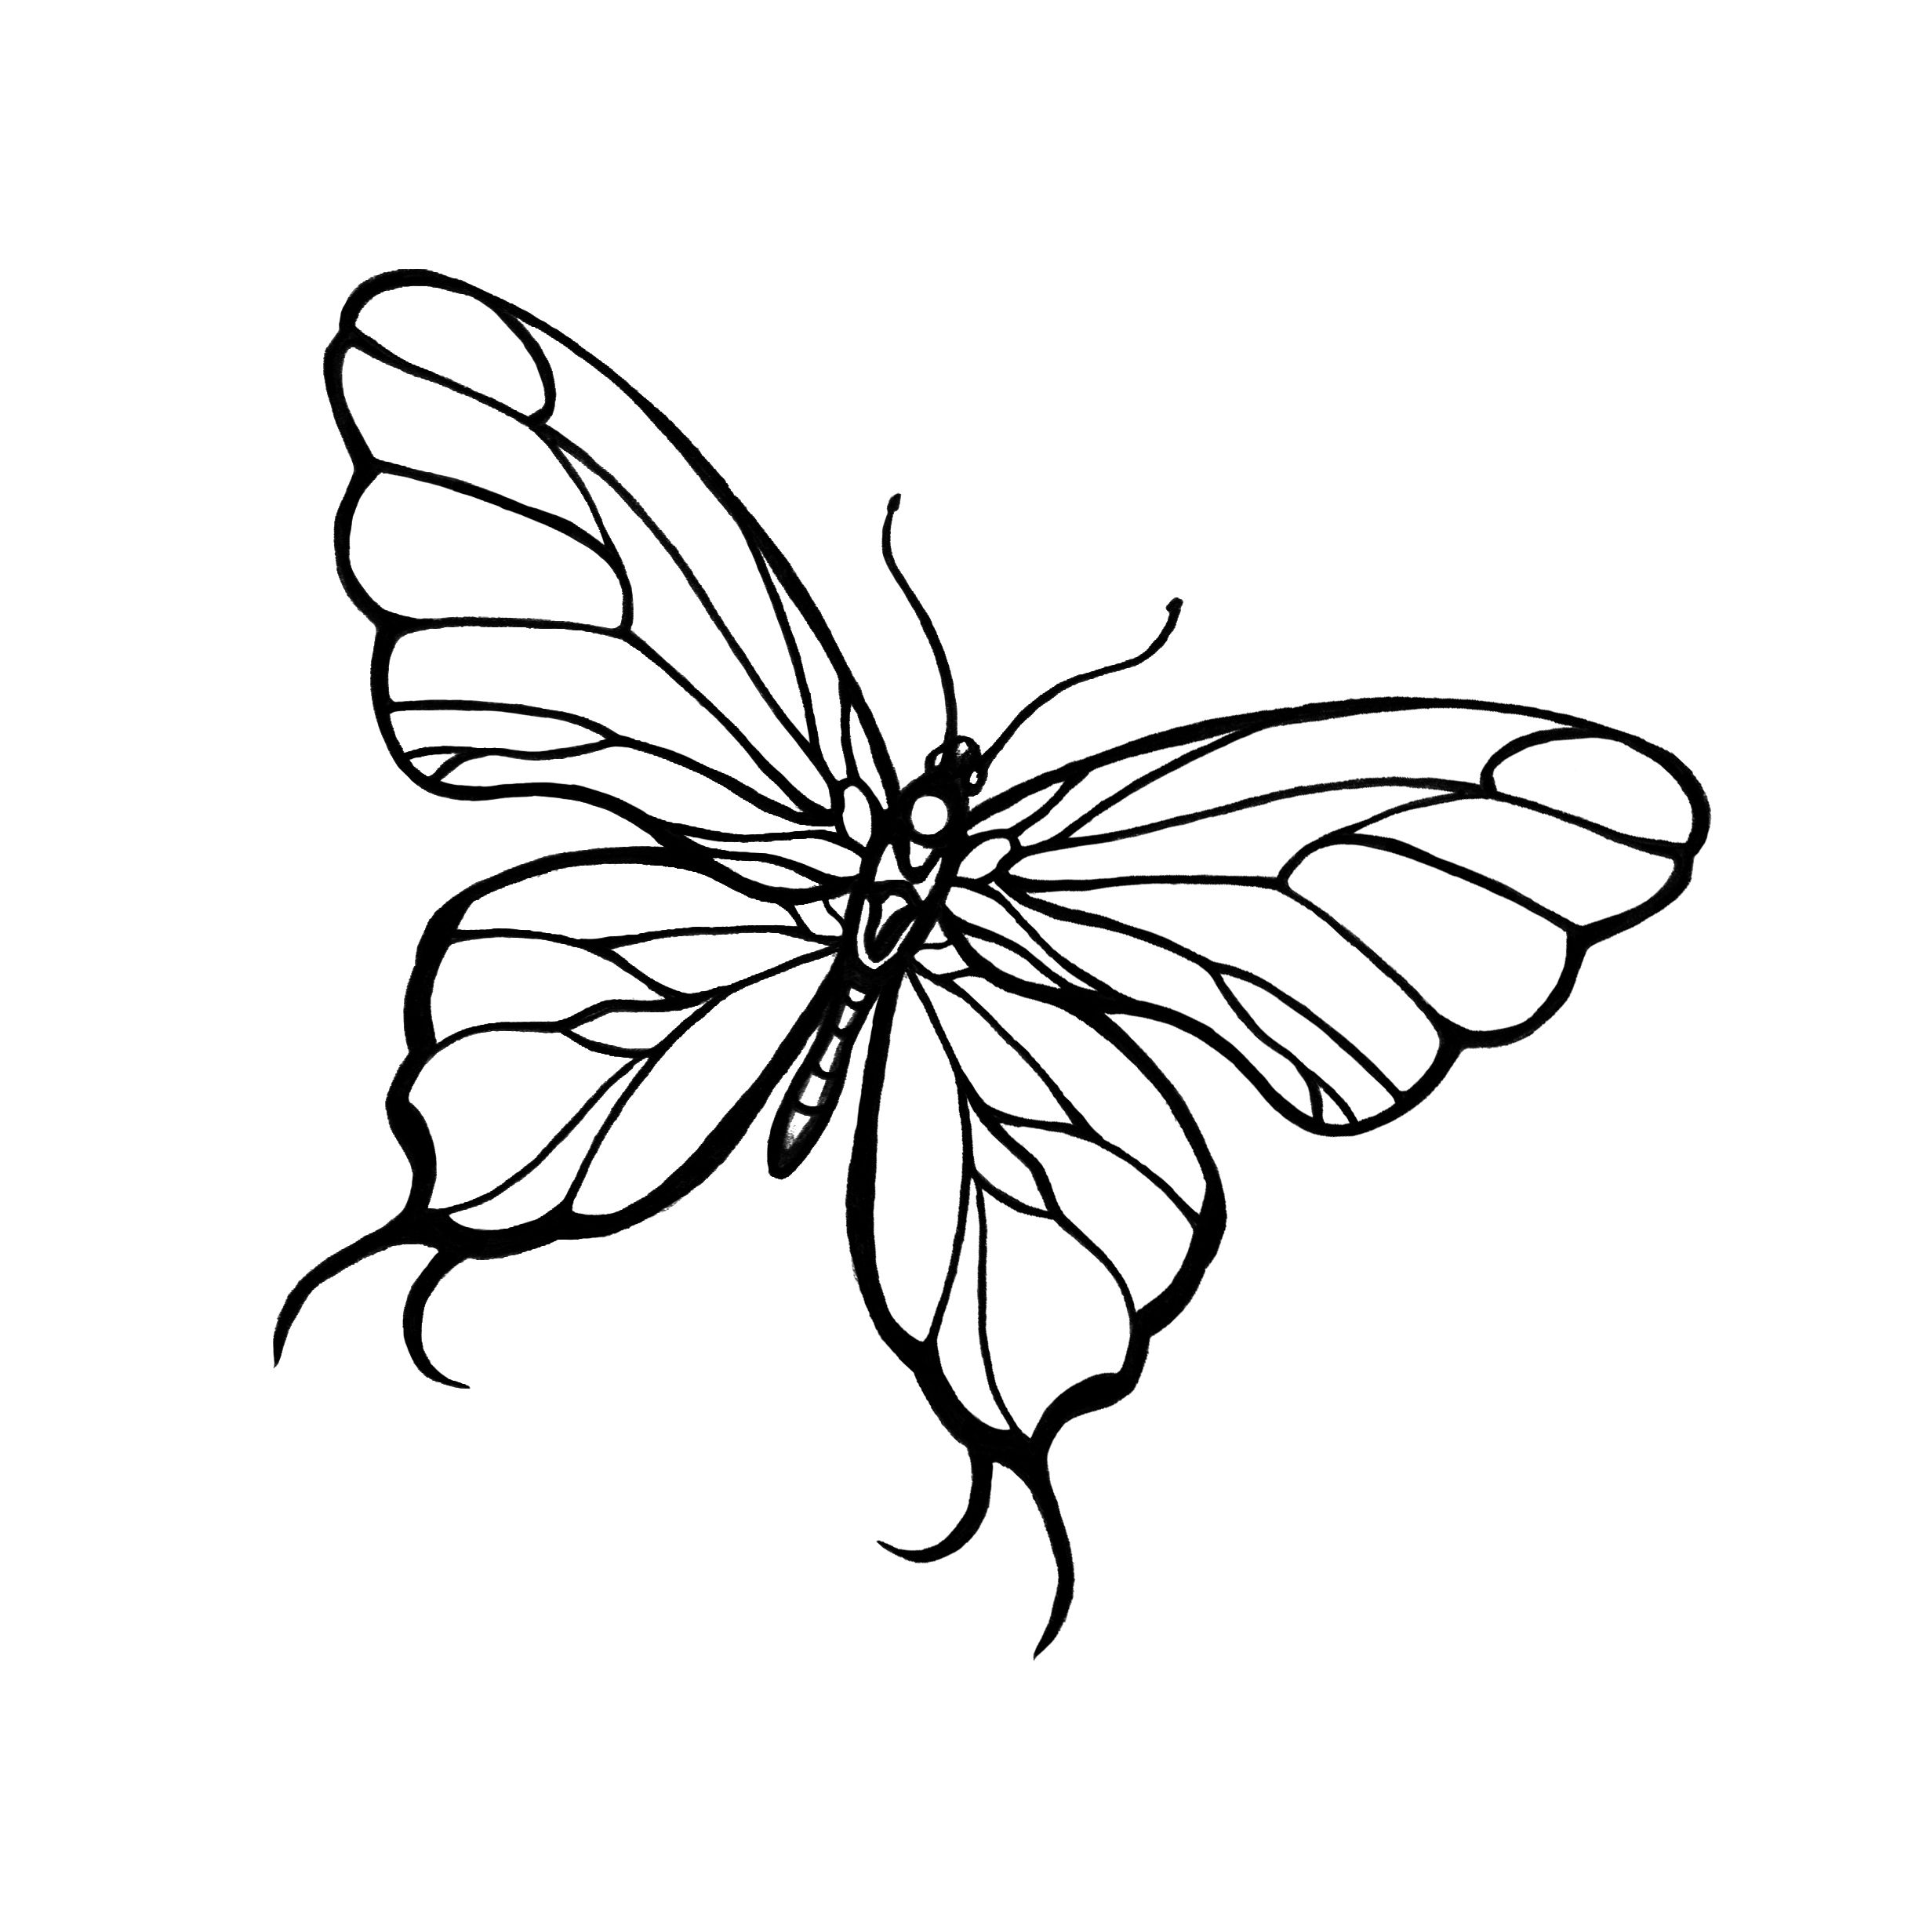 butterfly drawings little gift from TattooMeNow